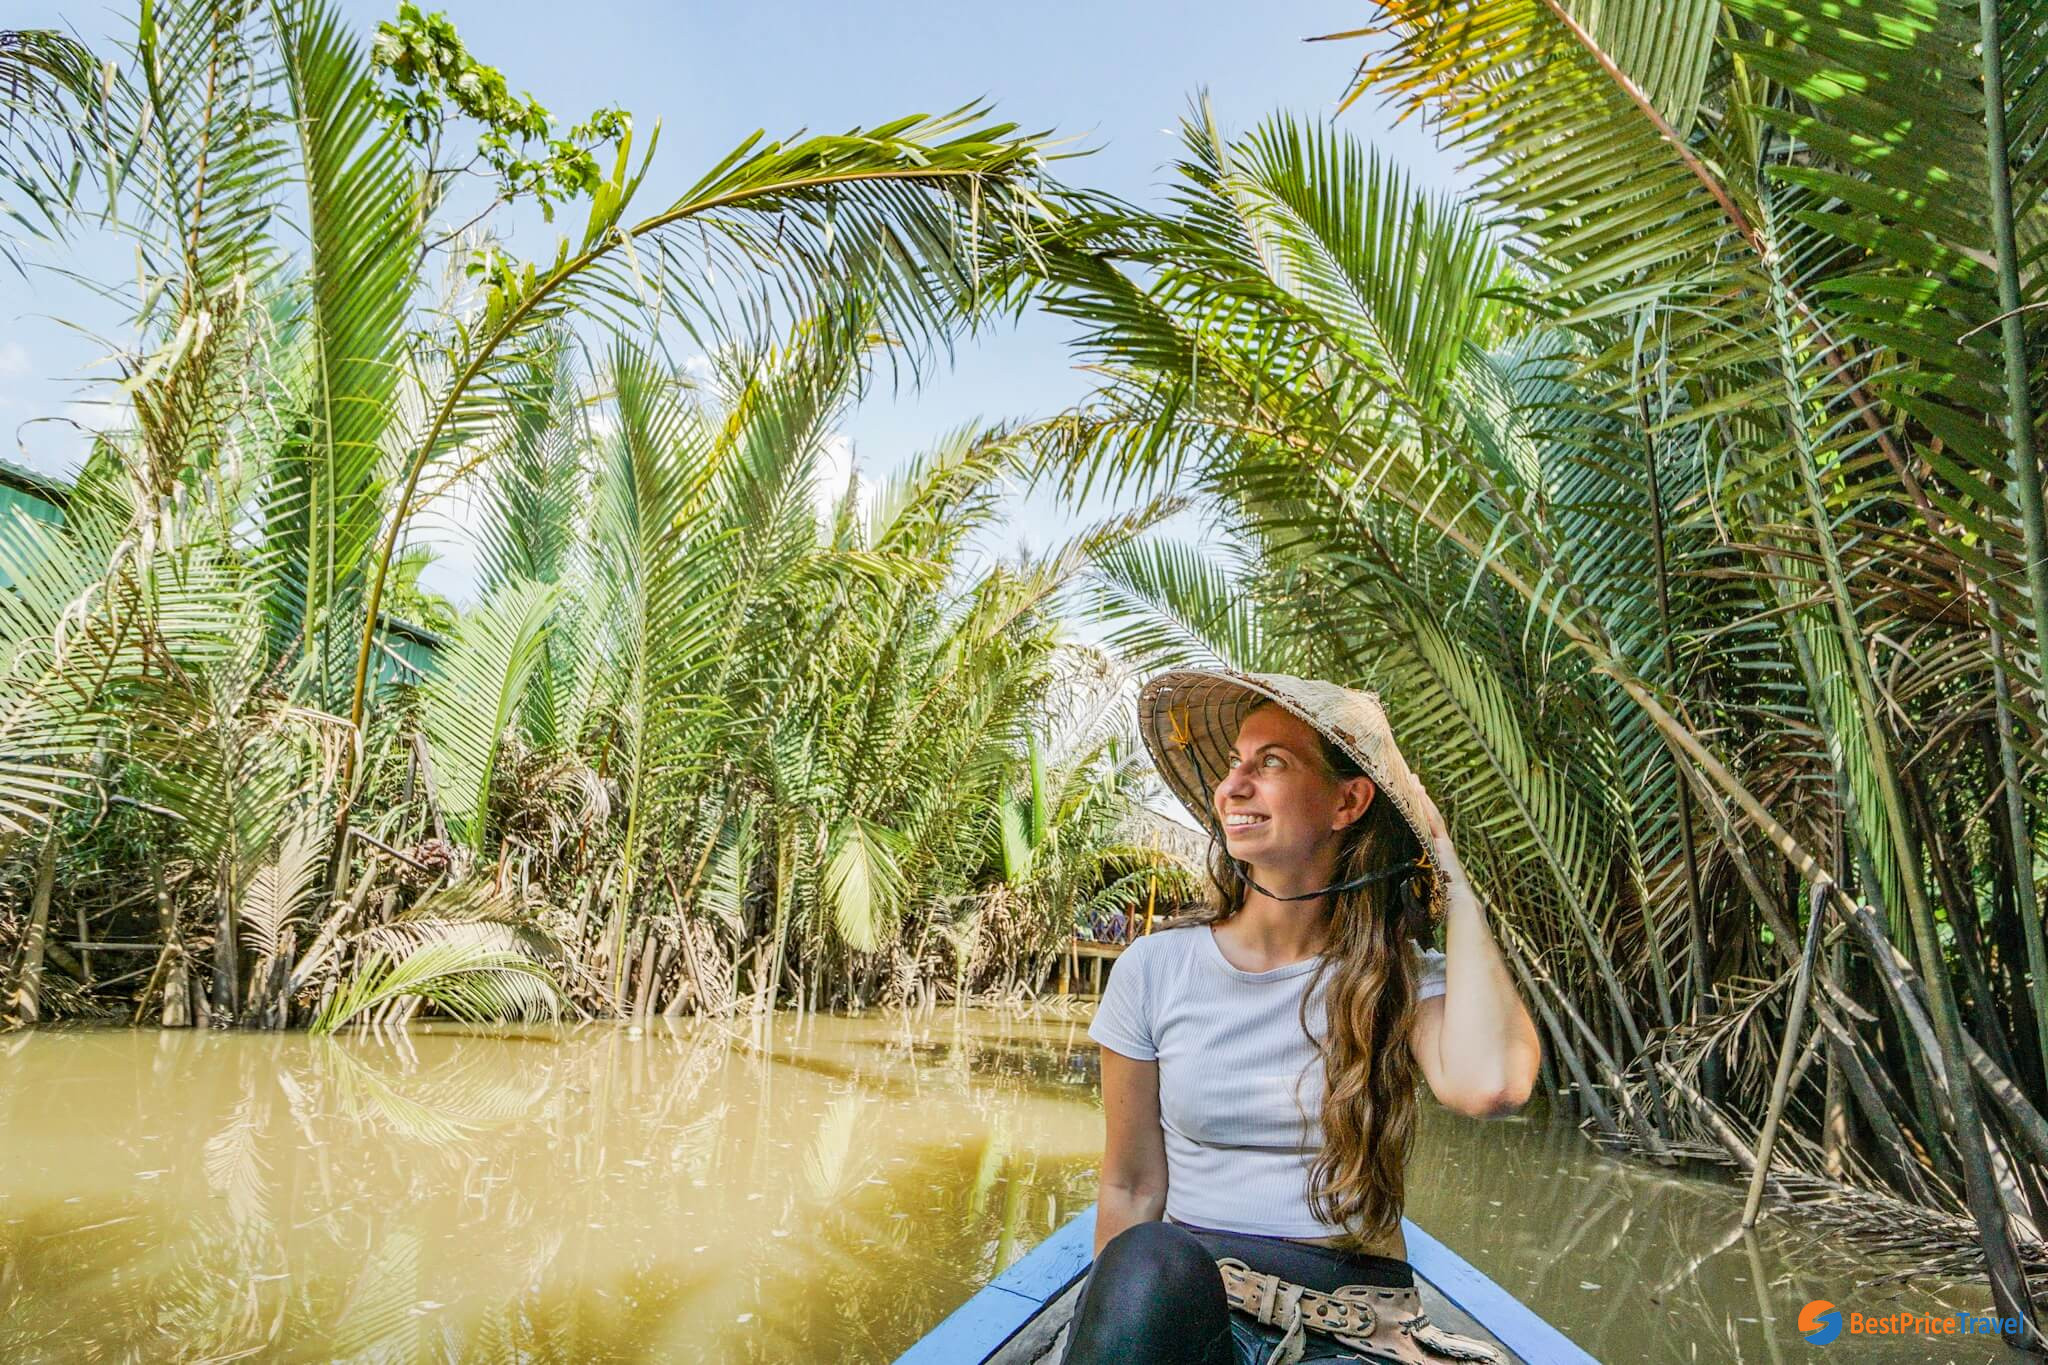 Enjoy your boat ride in Mekong Delta area